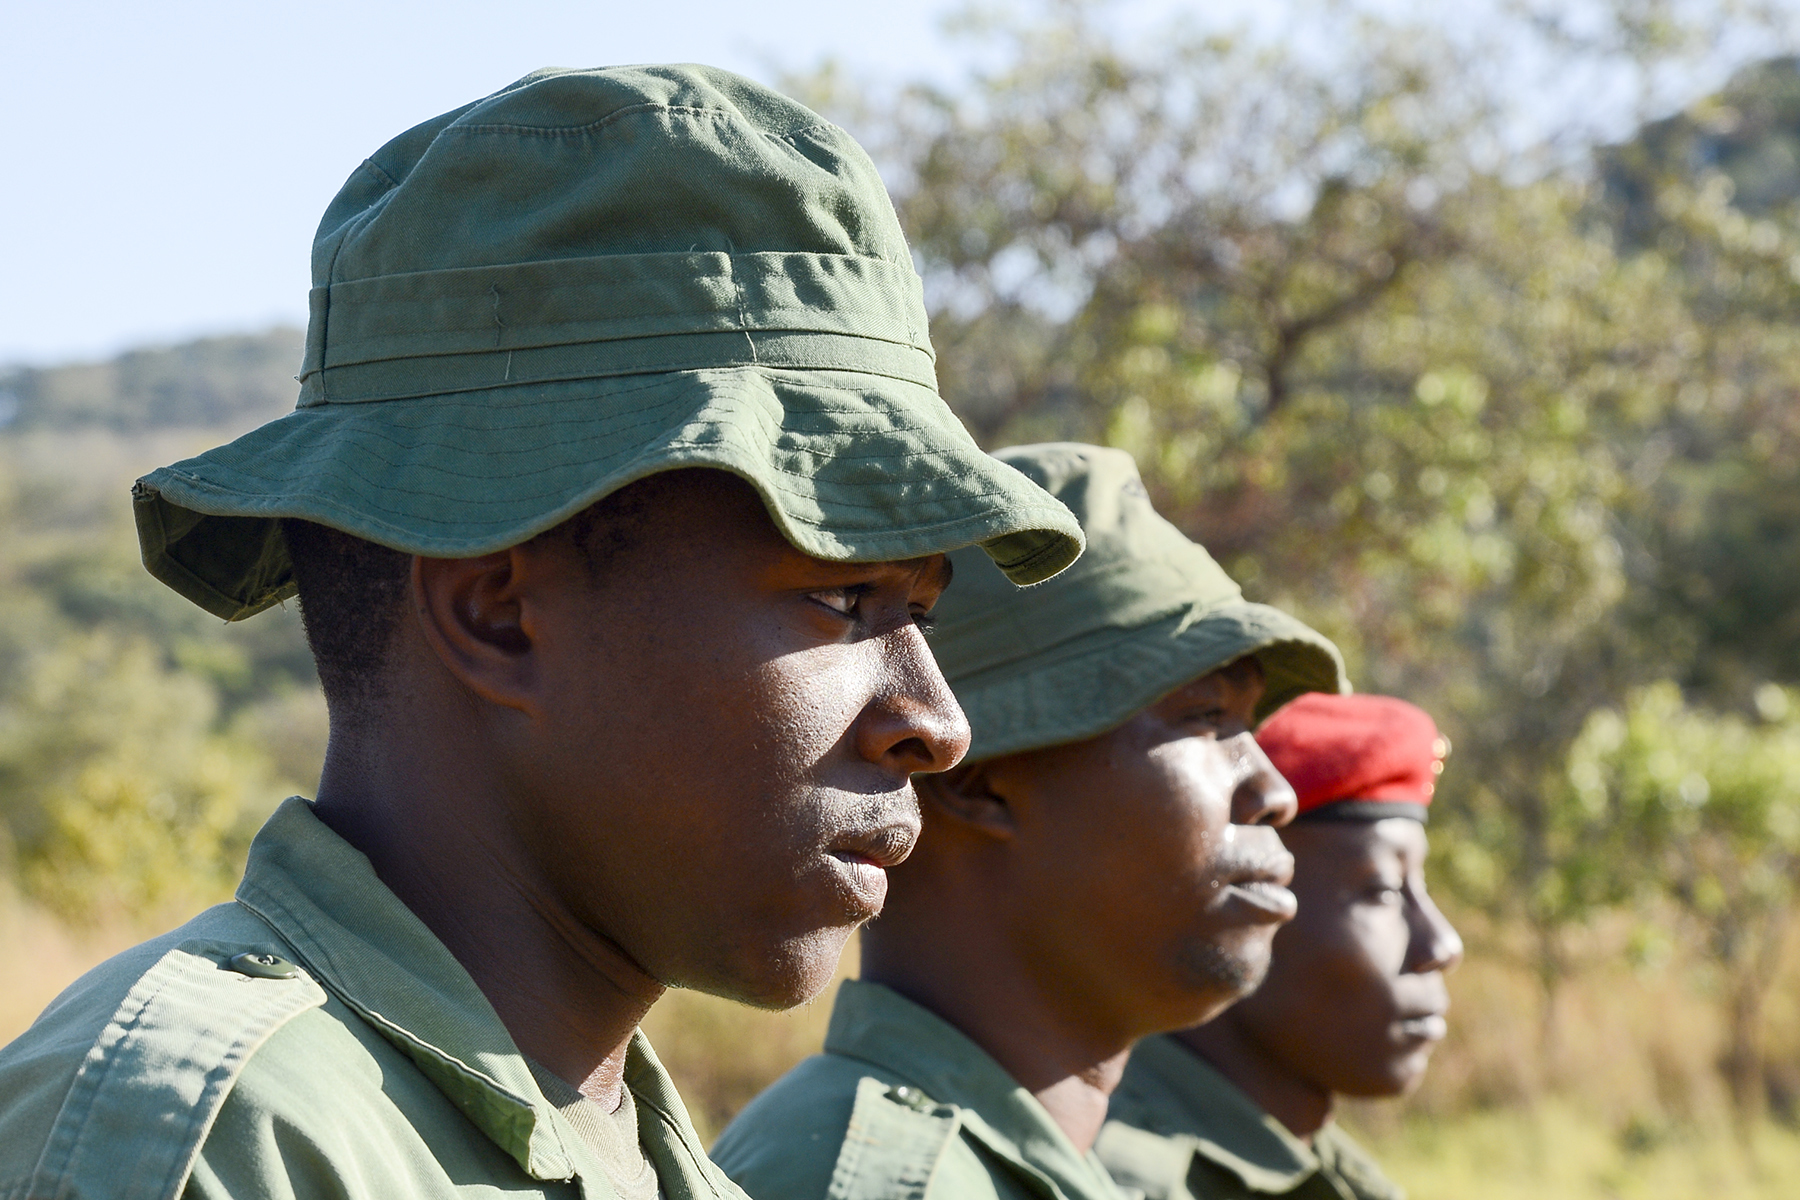 Tanzania Wildlife Management Authority (TAWA) patrol game wardens stand in formation for drill and ceremony training during a Counter Illicit Trafficking course, in Ngwala, Tanzania, July 24, 2018. The course provided by U.S. Army Soldiers with the 404th Civil Affairs Battalion, assigned to Combined Joint Task Force-Horn of Africa is a month-long course to enhance TAWA's anti-poaching capabilities in Tanzania. (U.S. Navy Photo by Mass Communication Specialist 2nd Class Timothy M. Ahearn)